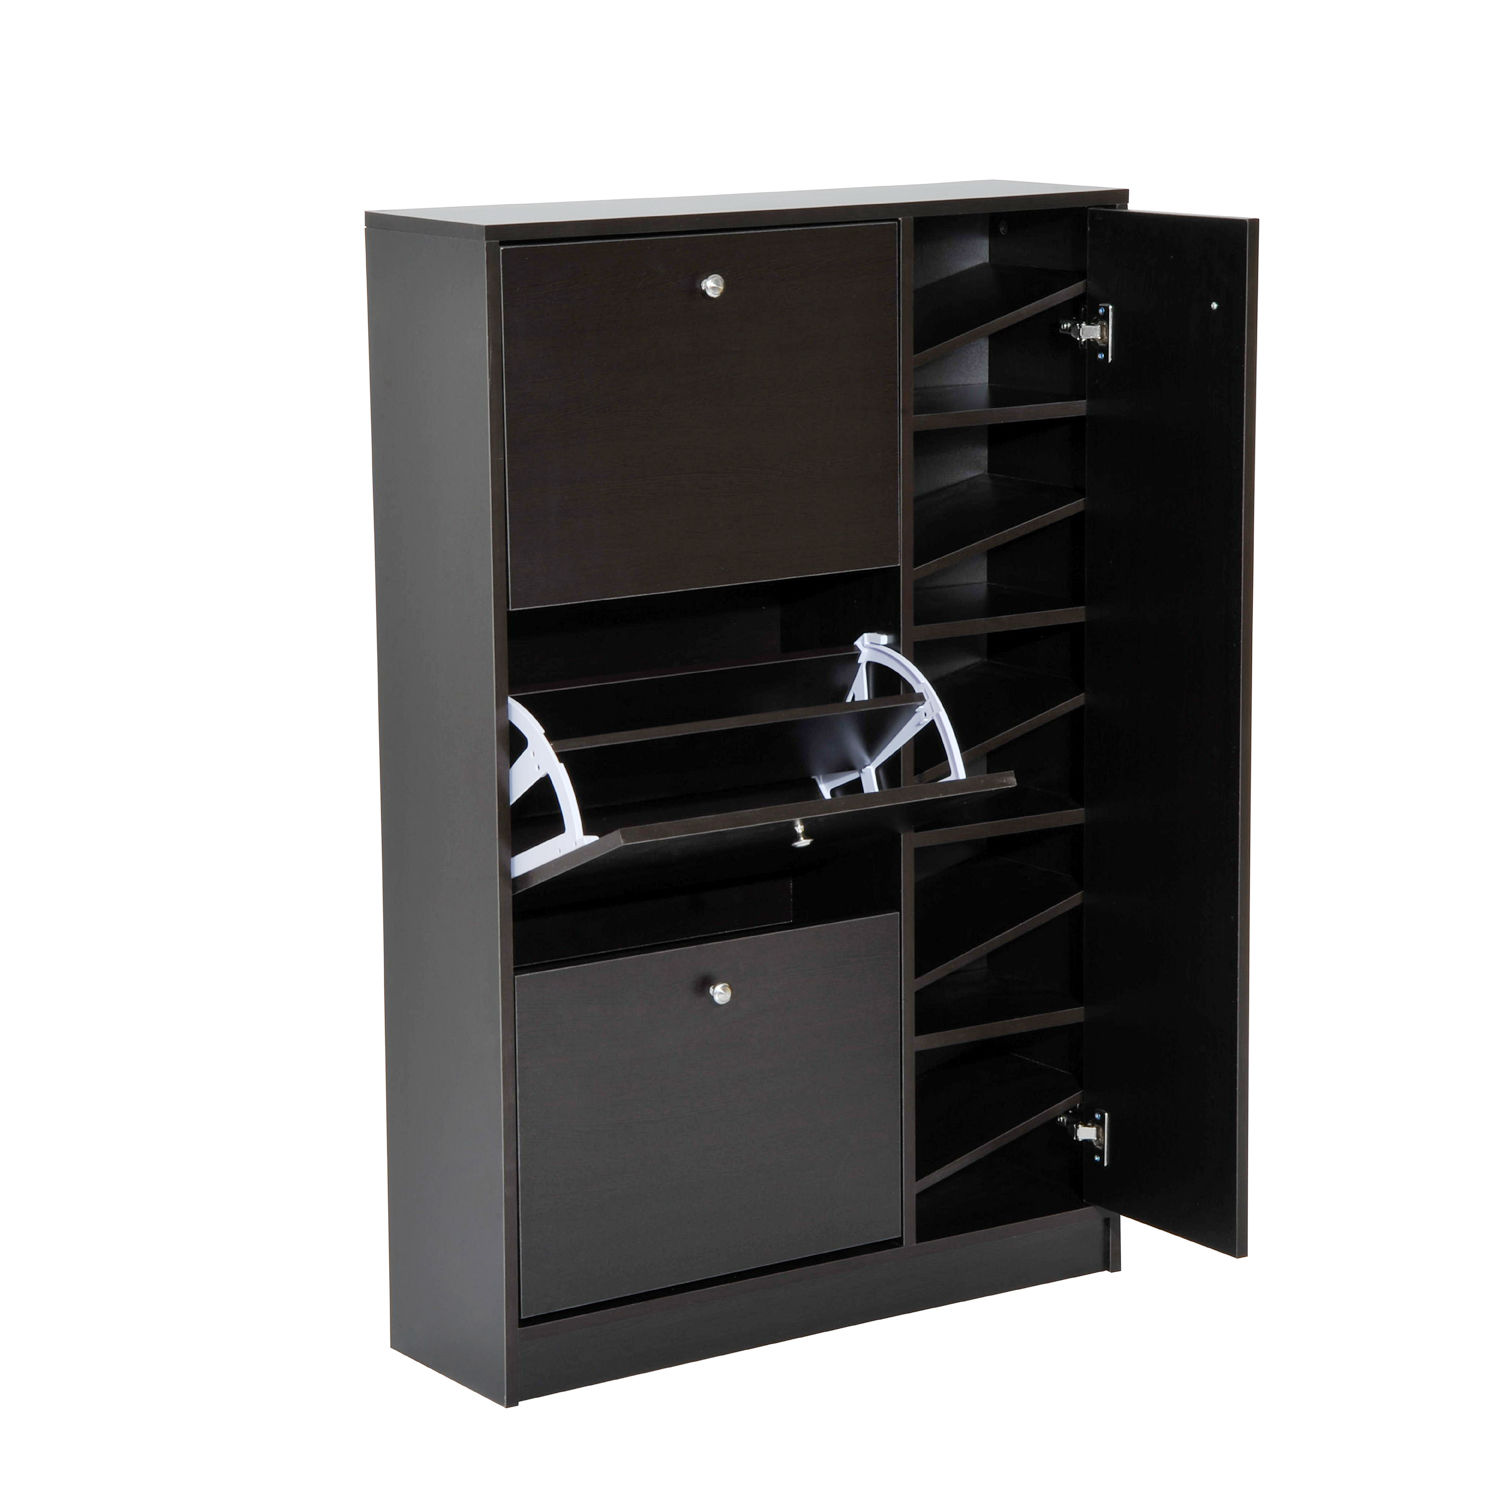 doors organizer cabinets ideas broom closet with storage utility narrow tall